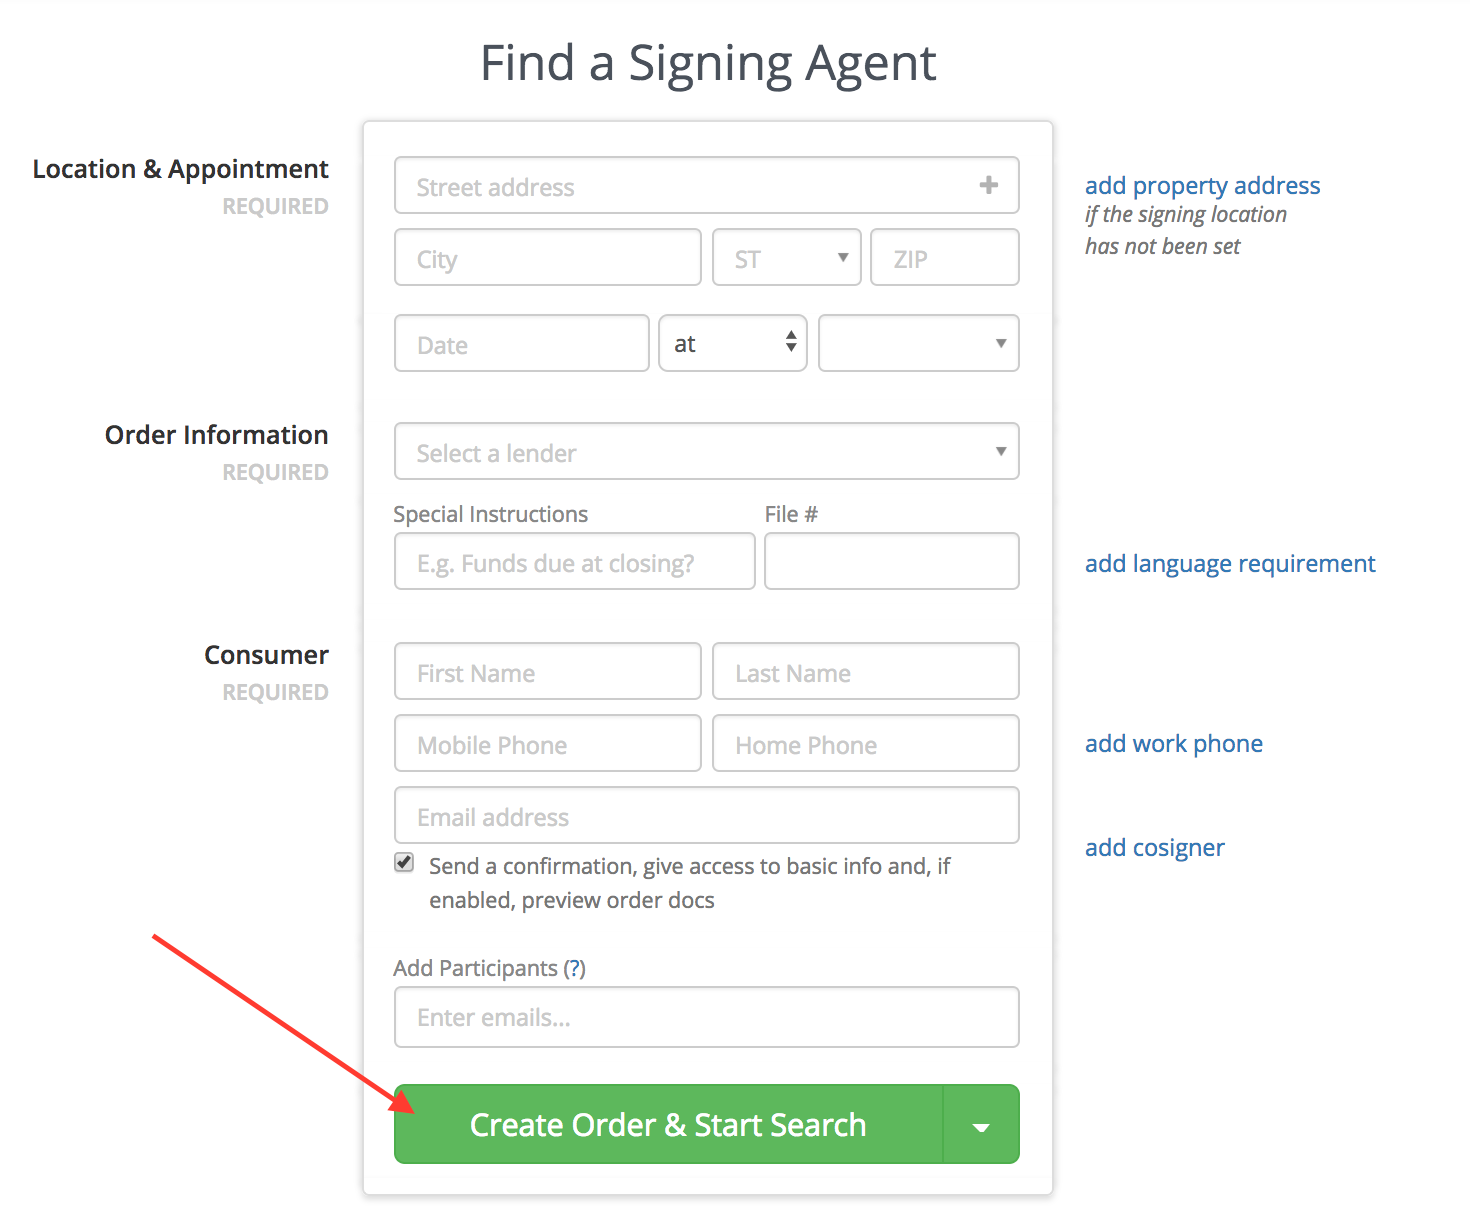 Screen_Shot_2018-03-16_at_3.46.56_PM.png